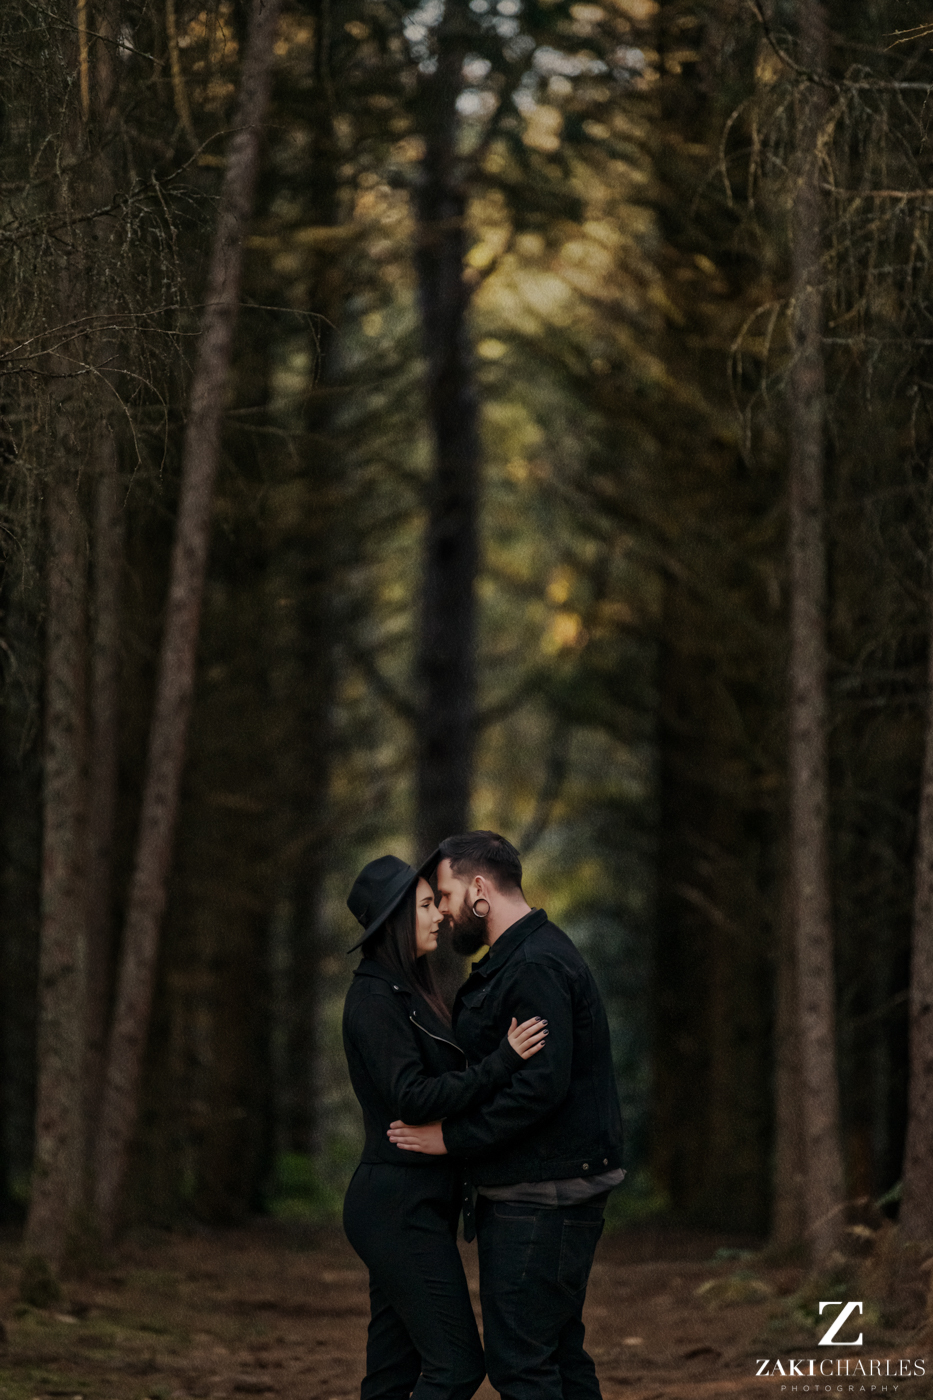 Black Park Engagement Session, Kirsty & Alex Zaki Charles Photography 5